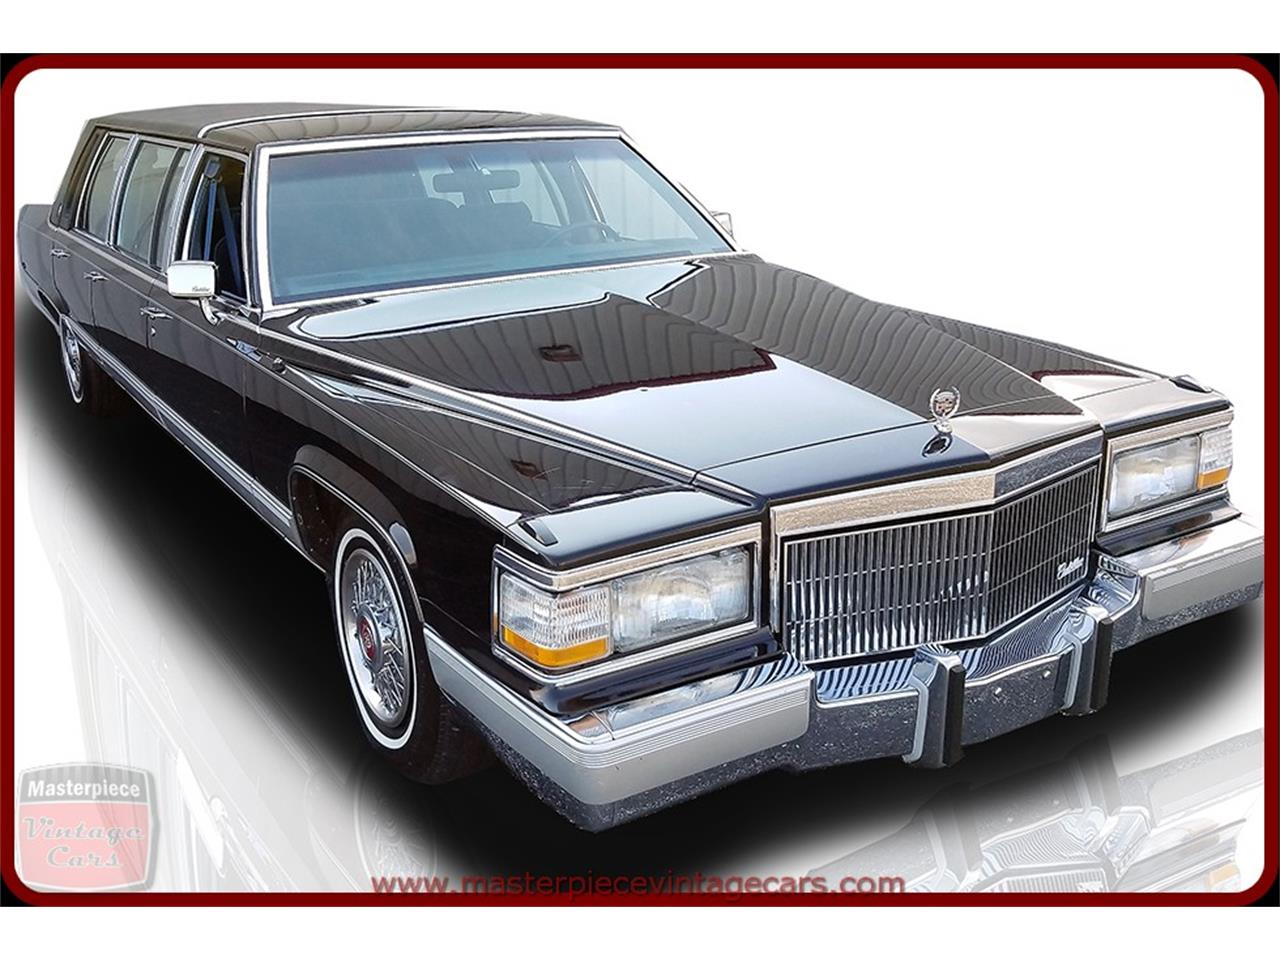 1991 Cadillac Brougham for sale in Whiteland, IN